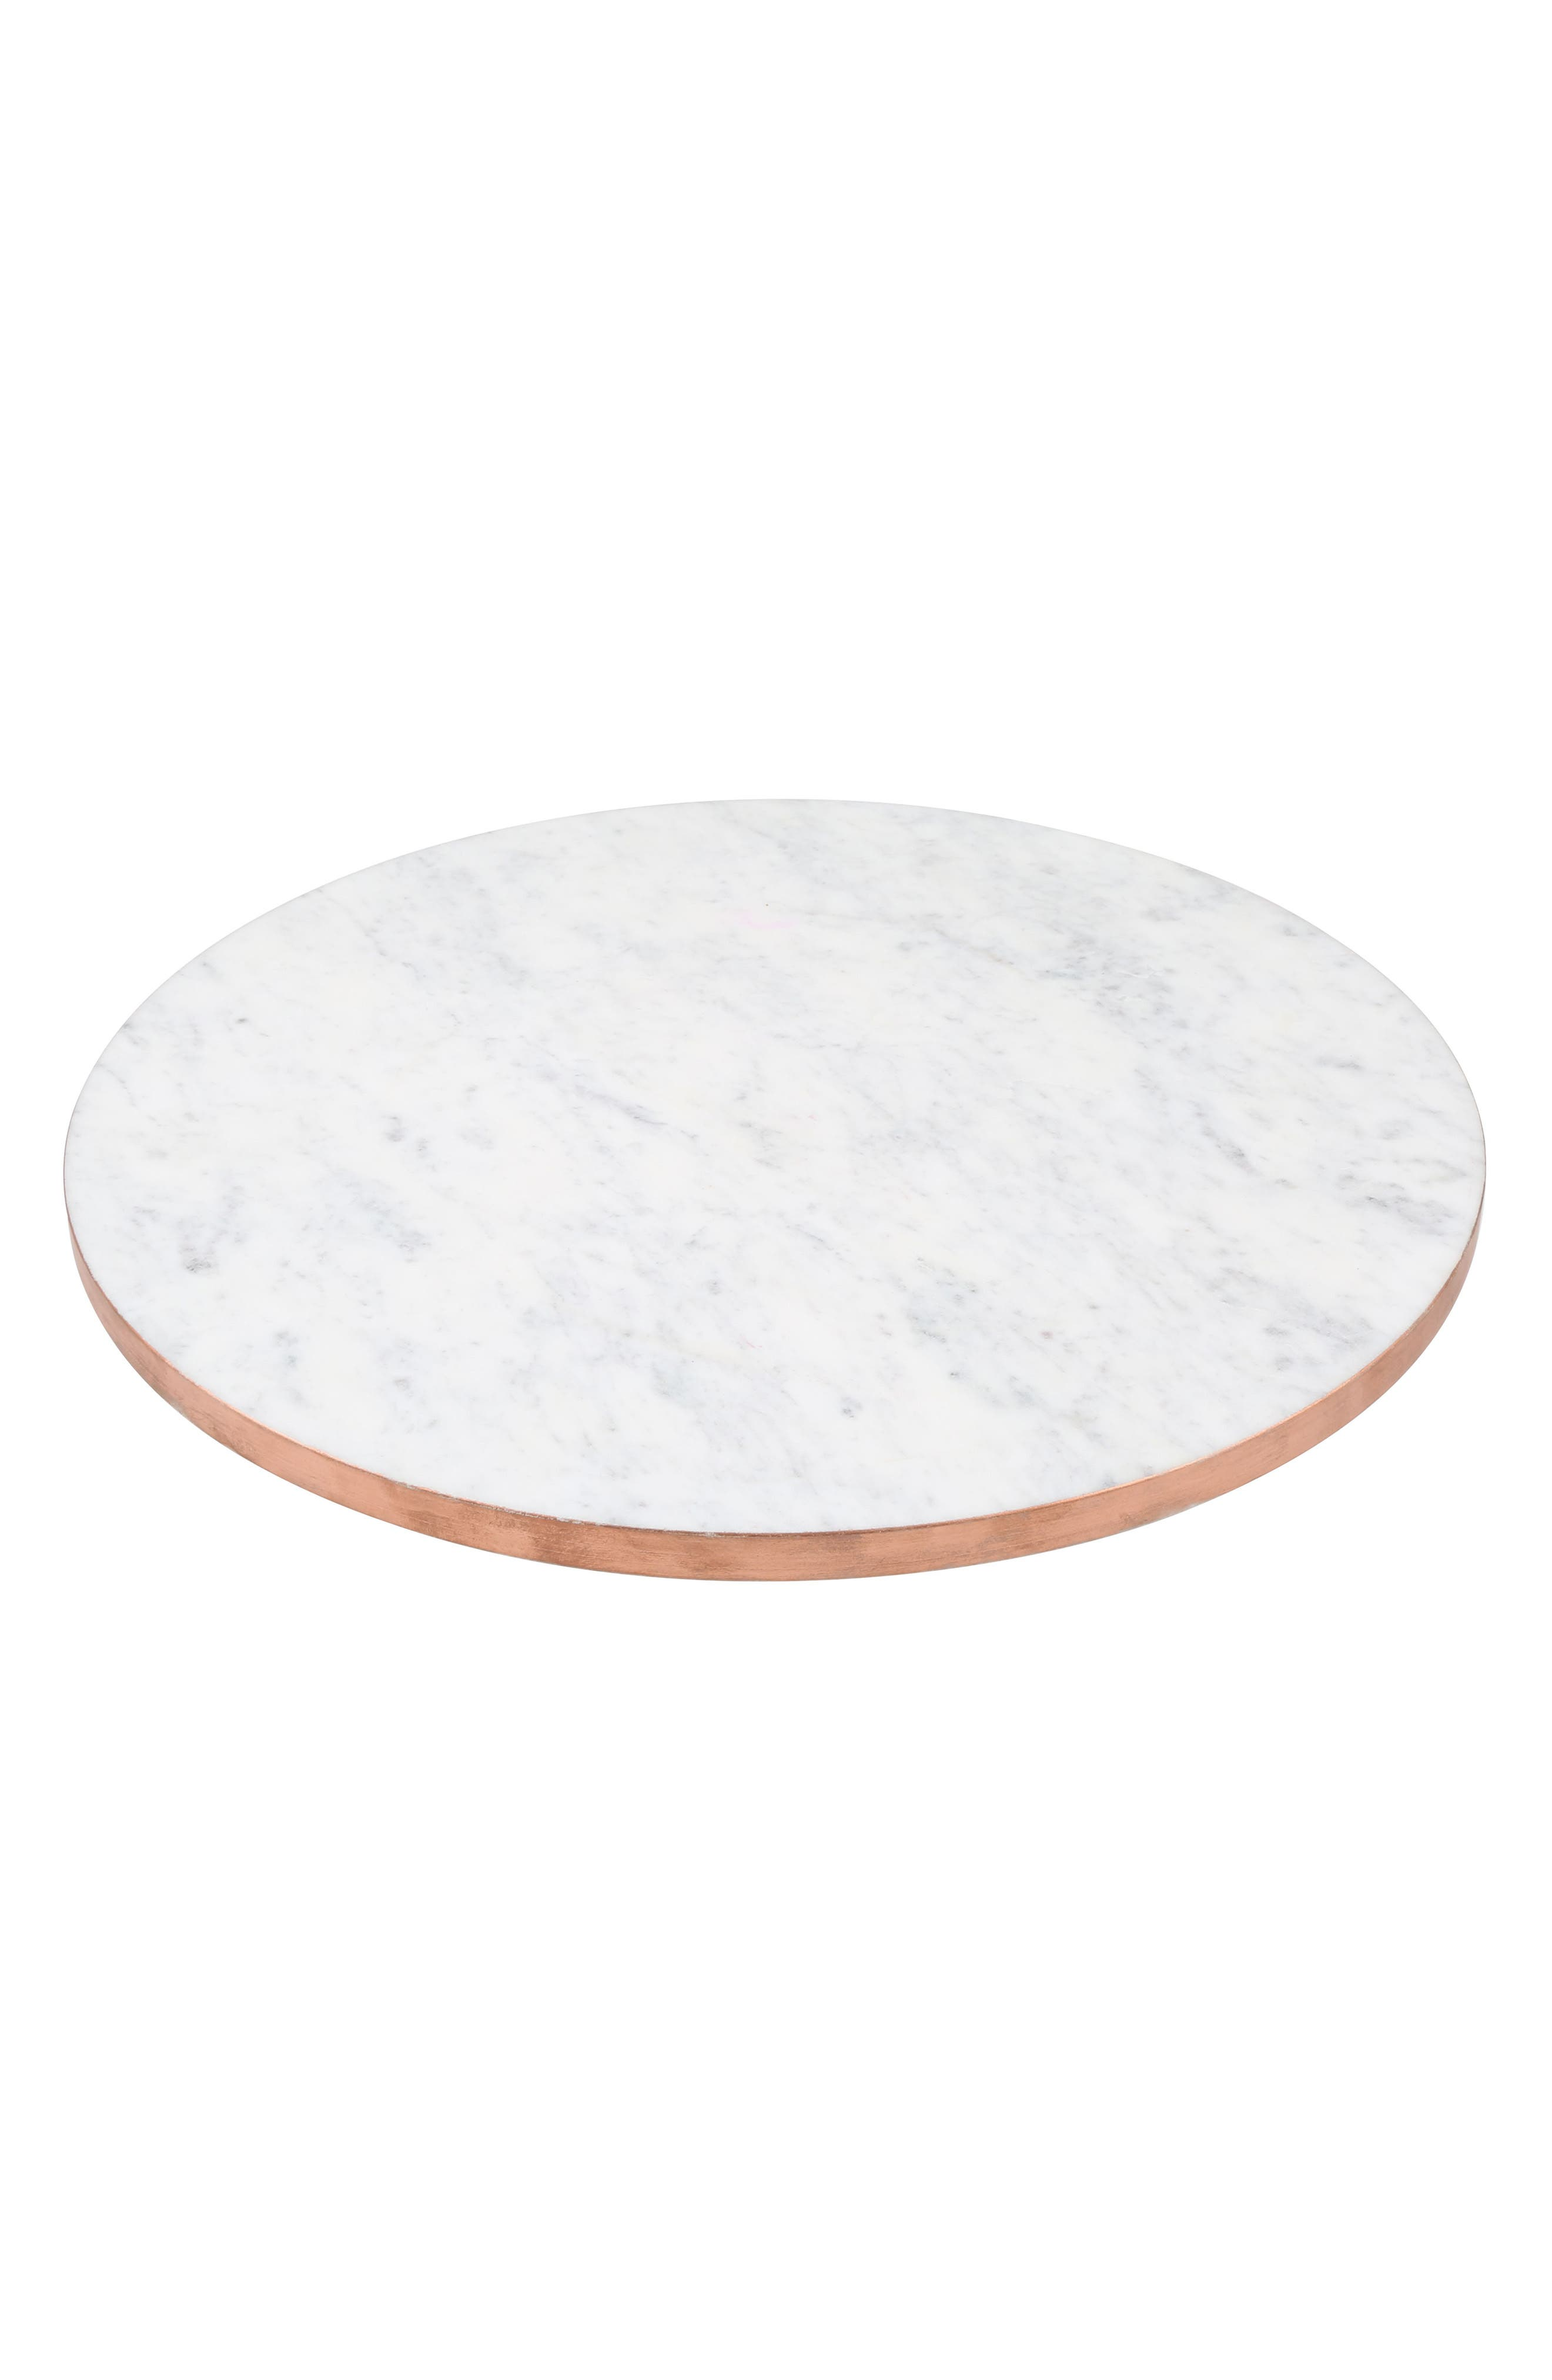 Alternate Image 1 Selected - Thirstystone Copper Edge Marble Lazy Susan